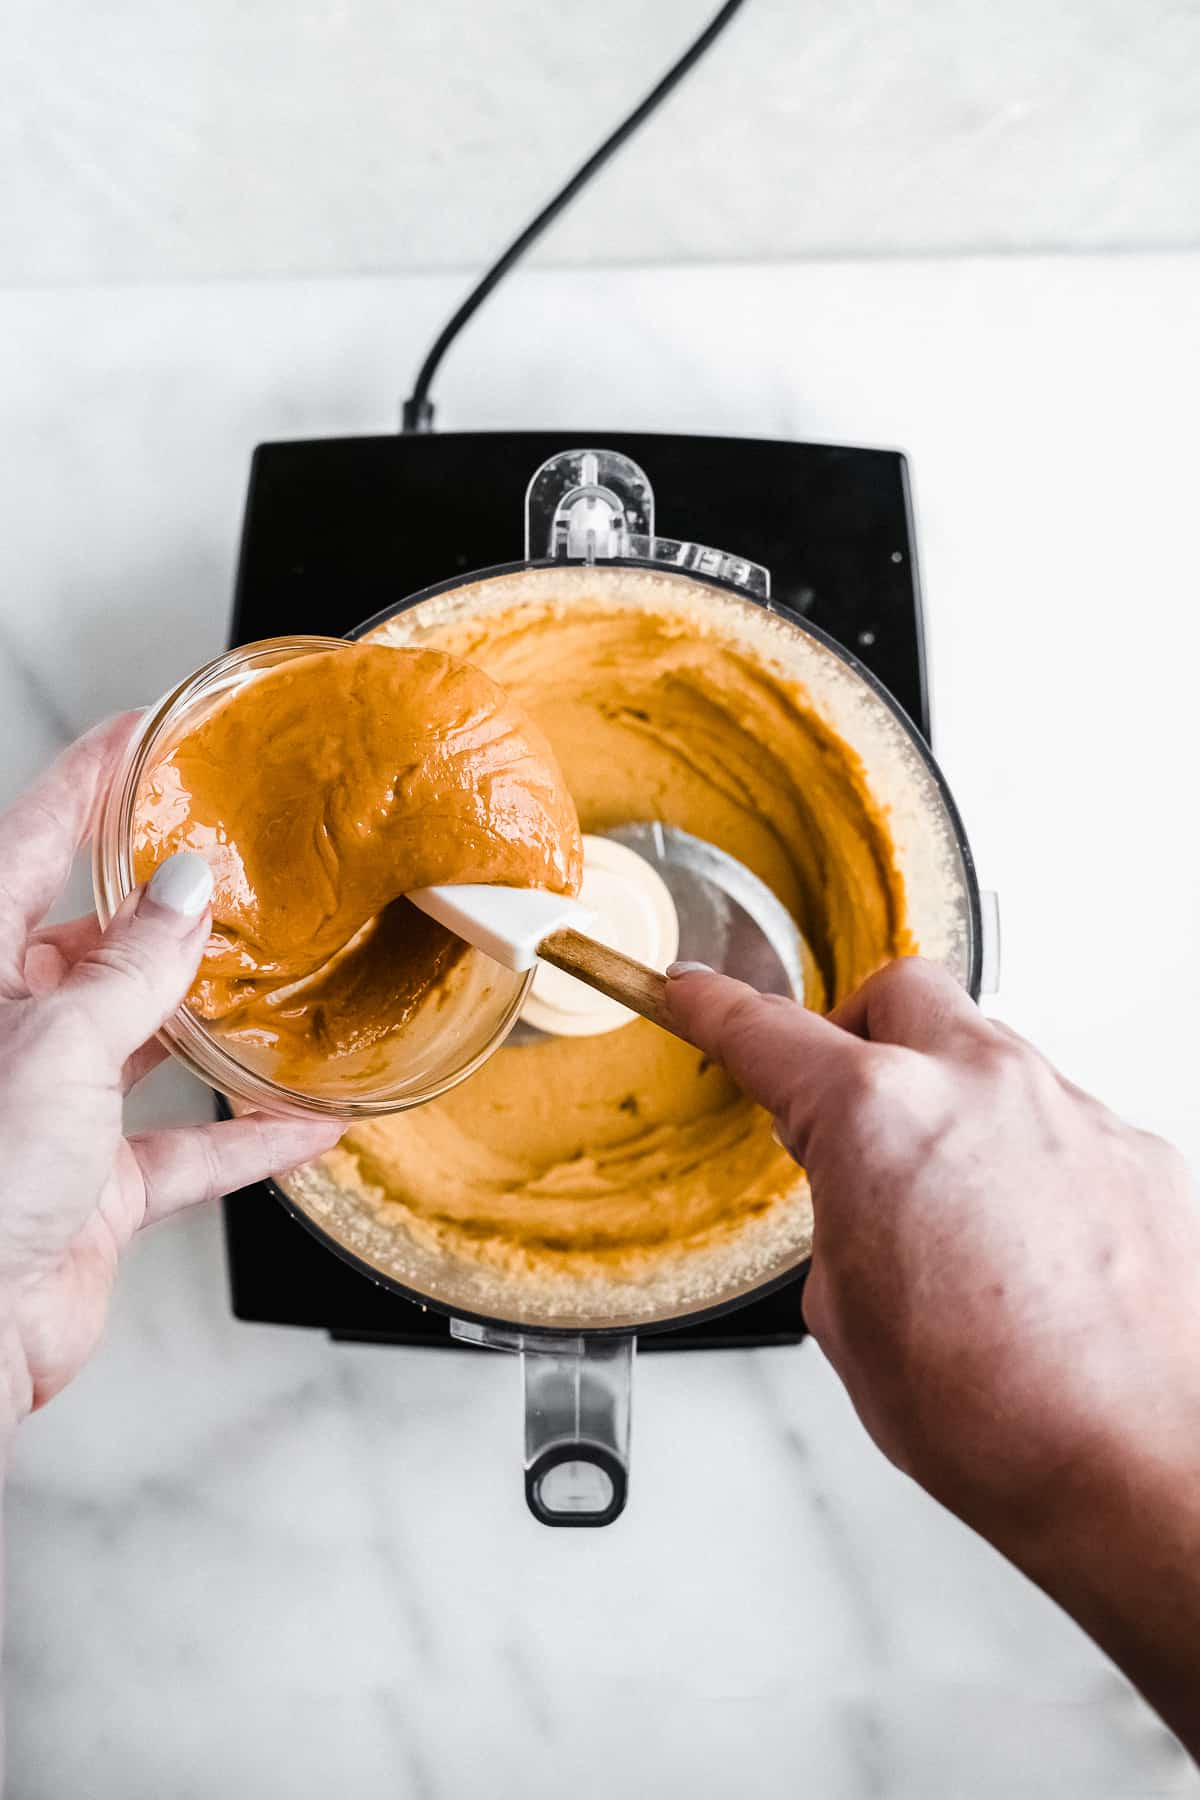 Hand pouring nut butter into food processor with tan mixture inside.